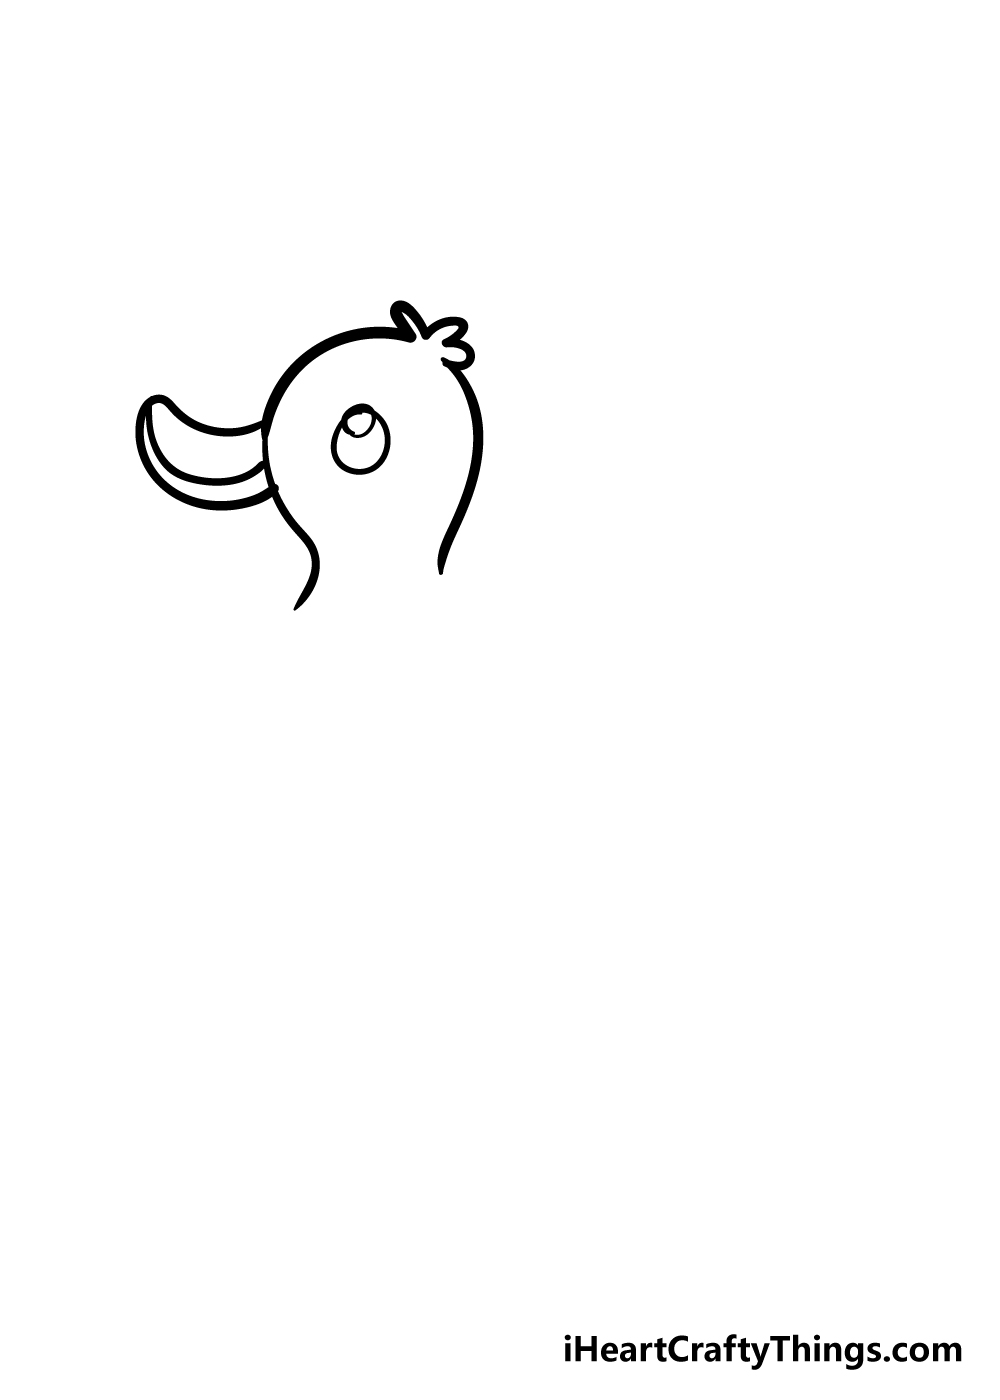 duck drawing step 3